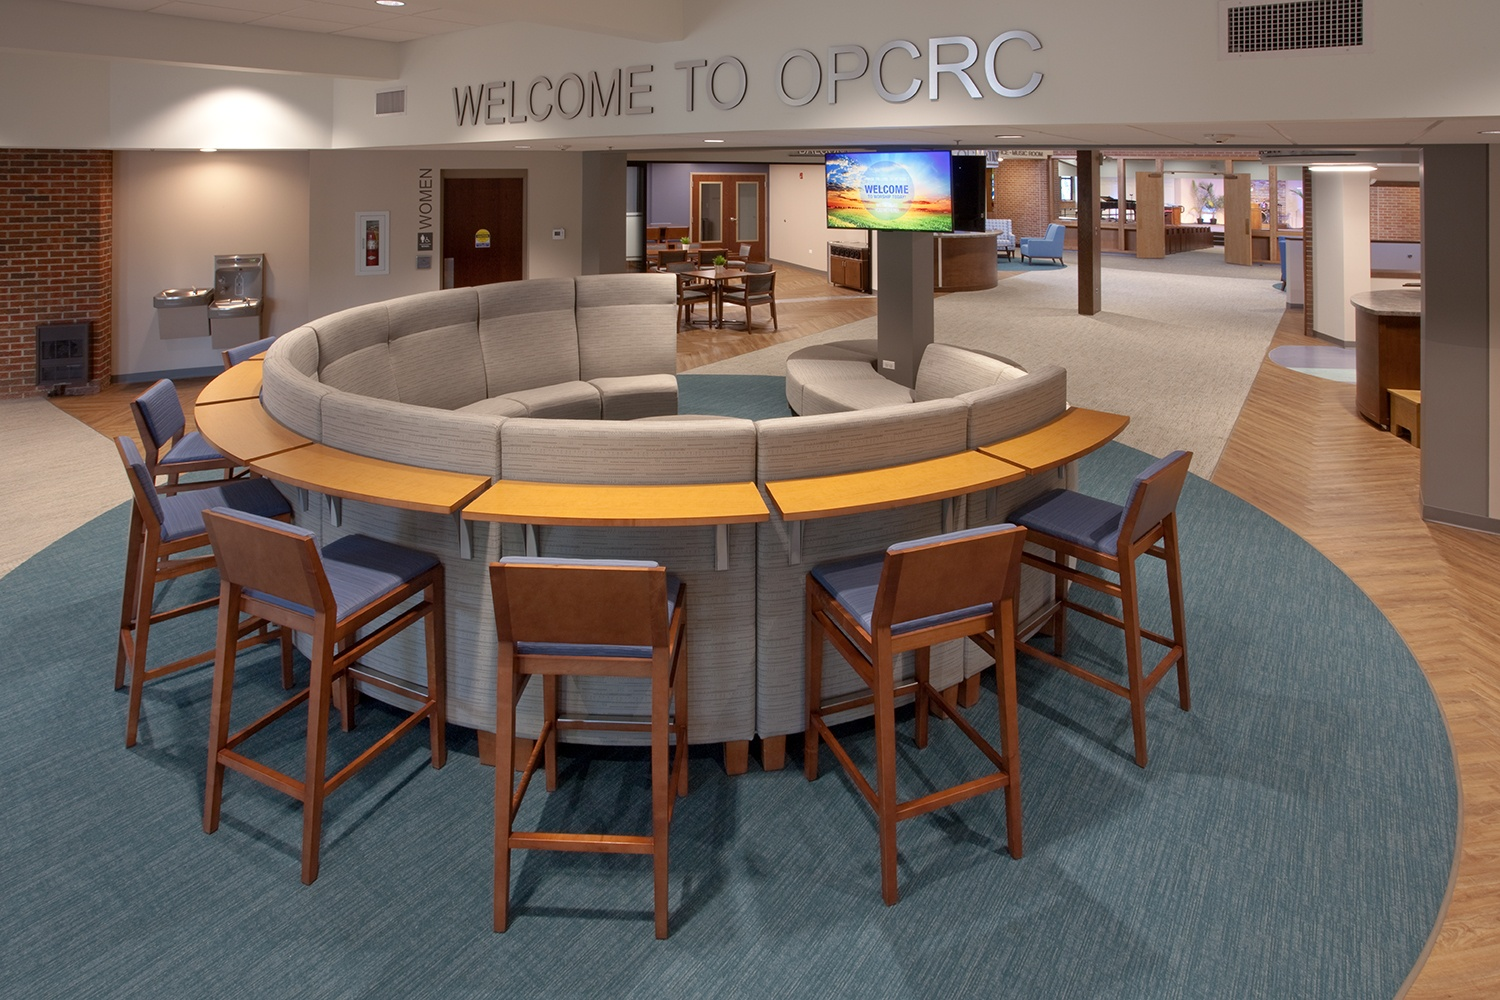 orland-park-welcome-web